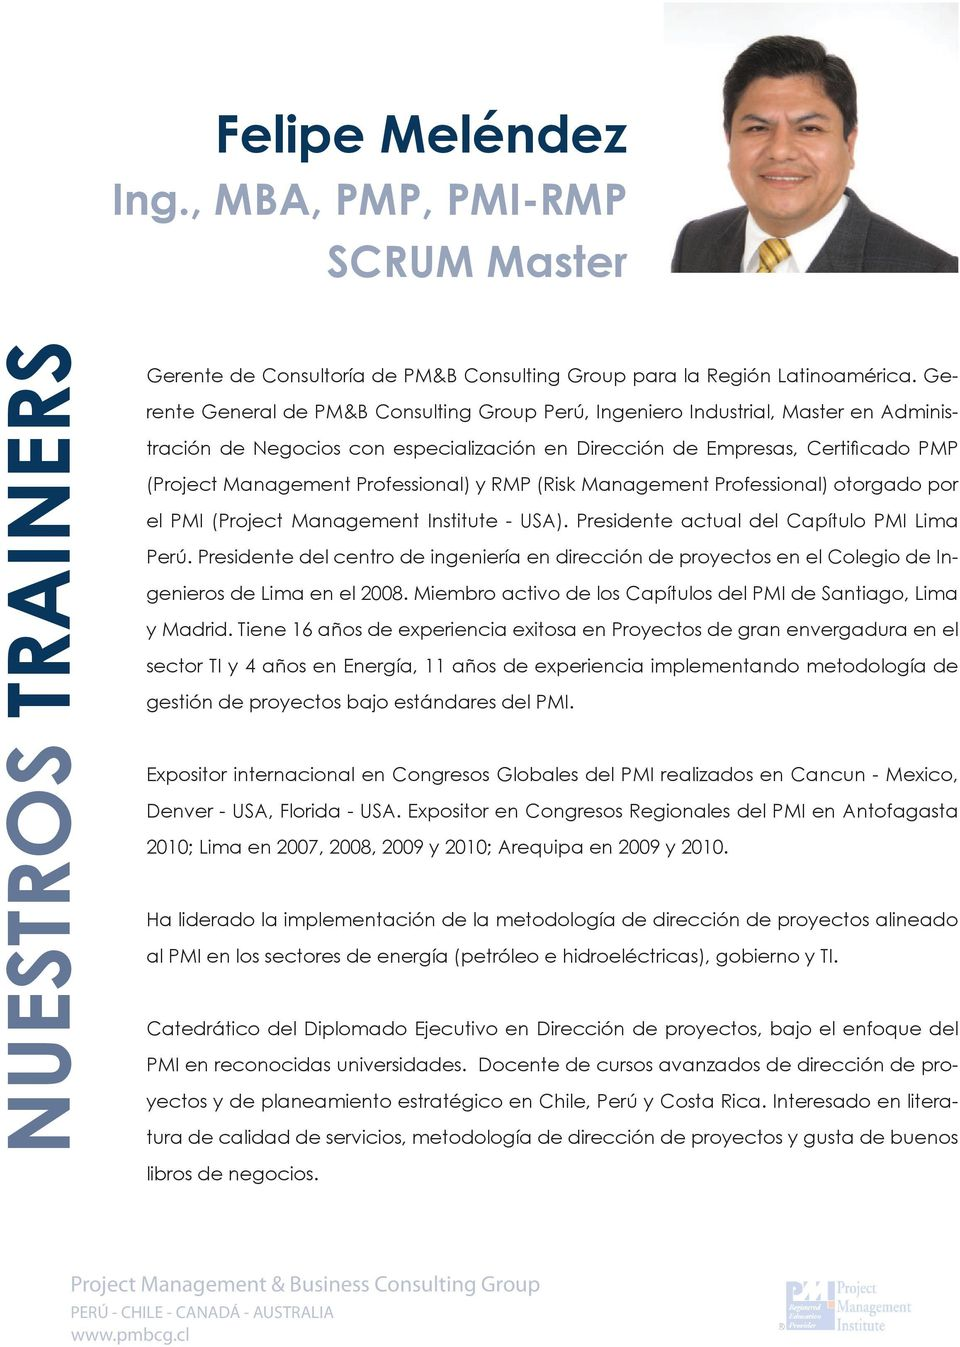 Professional) y RMP (Risk Management Professional) otorgado por el PMI (Project Management Institute - USA). Presidente actual del Capítulo PMI Lima Perú.